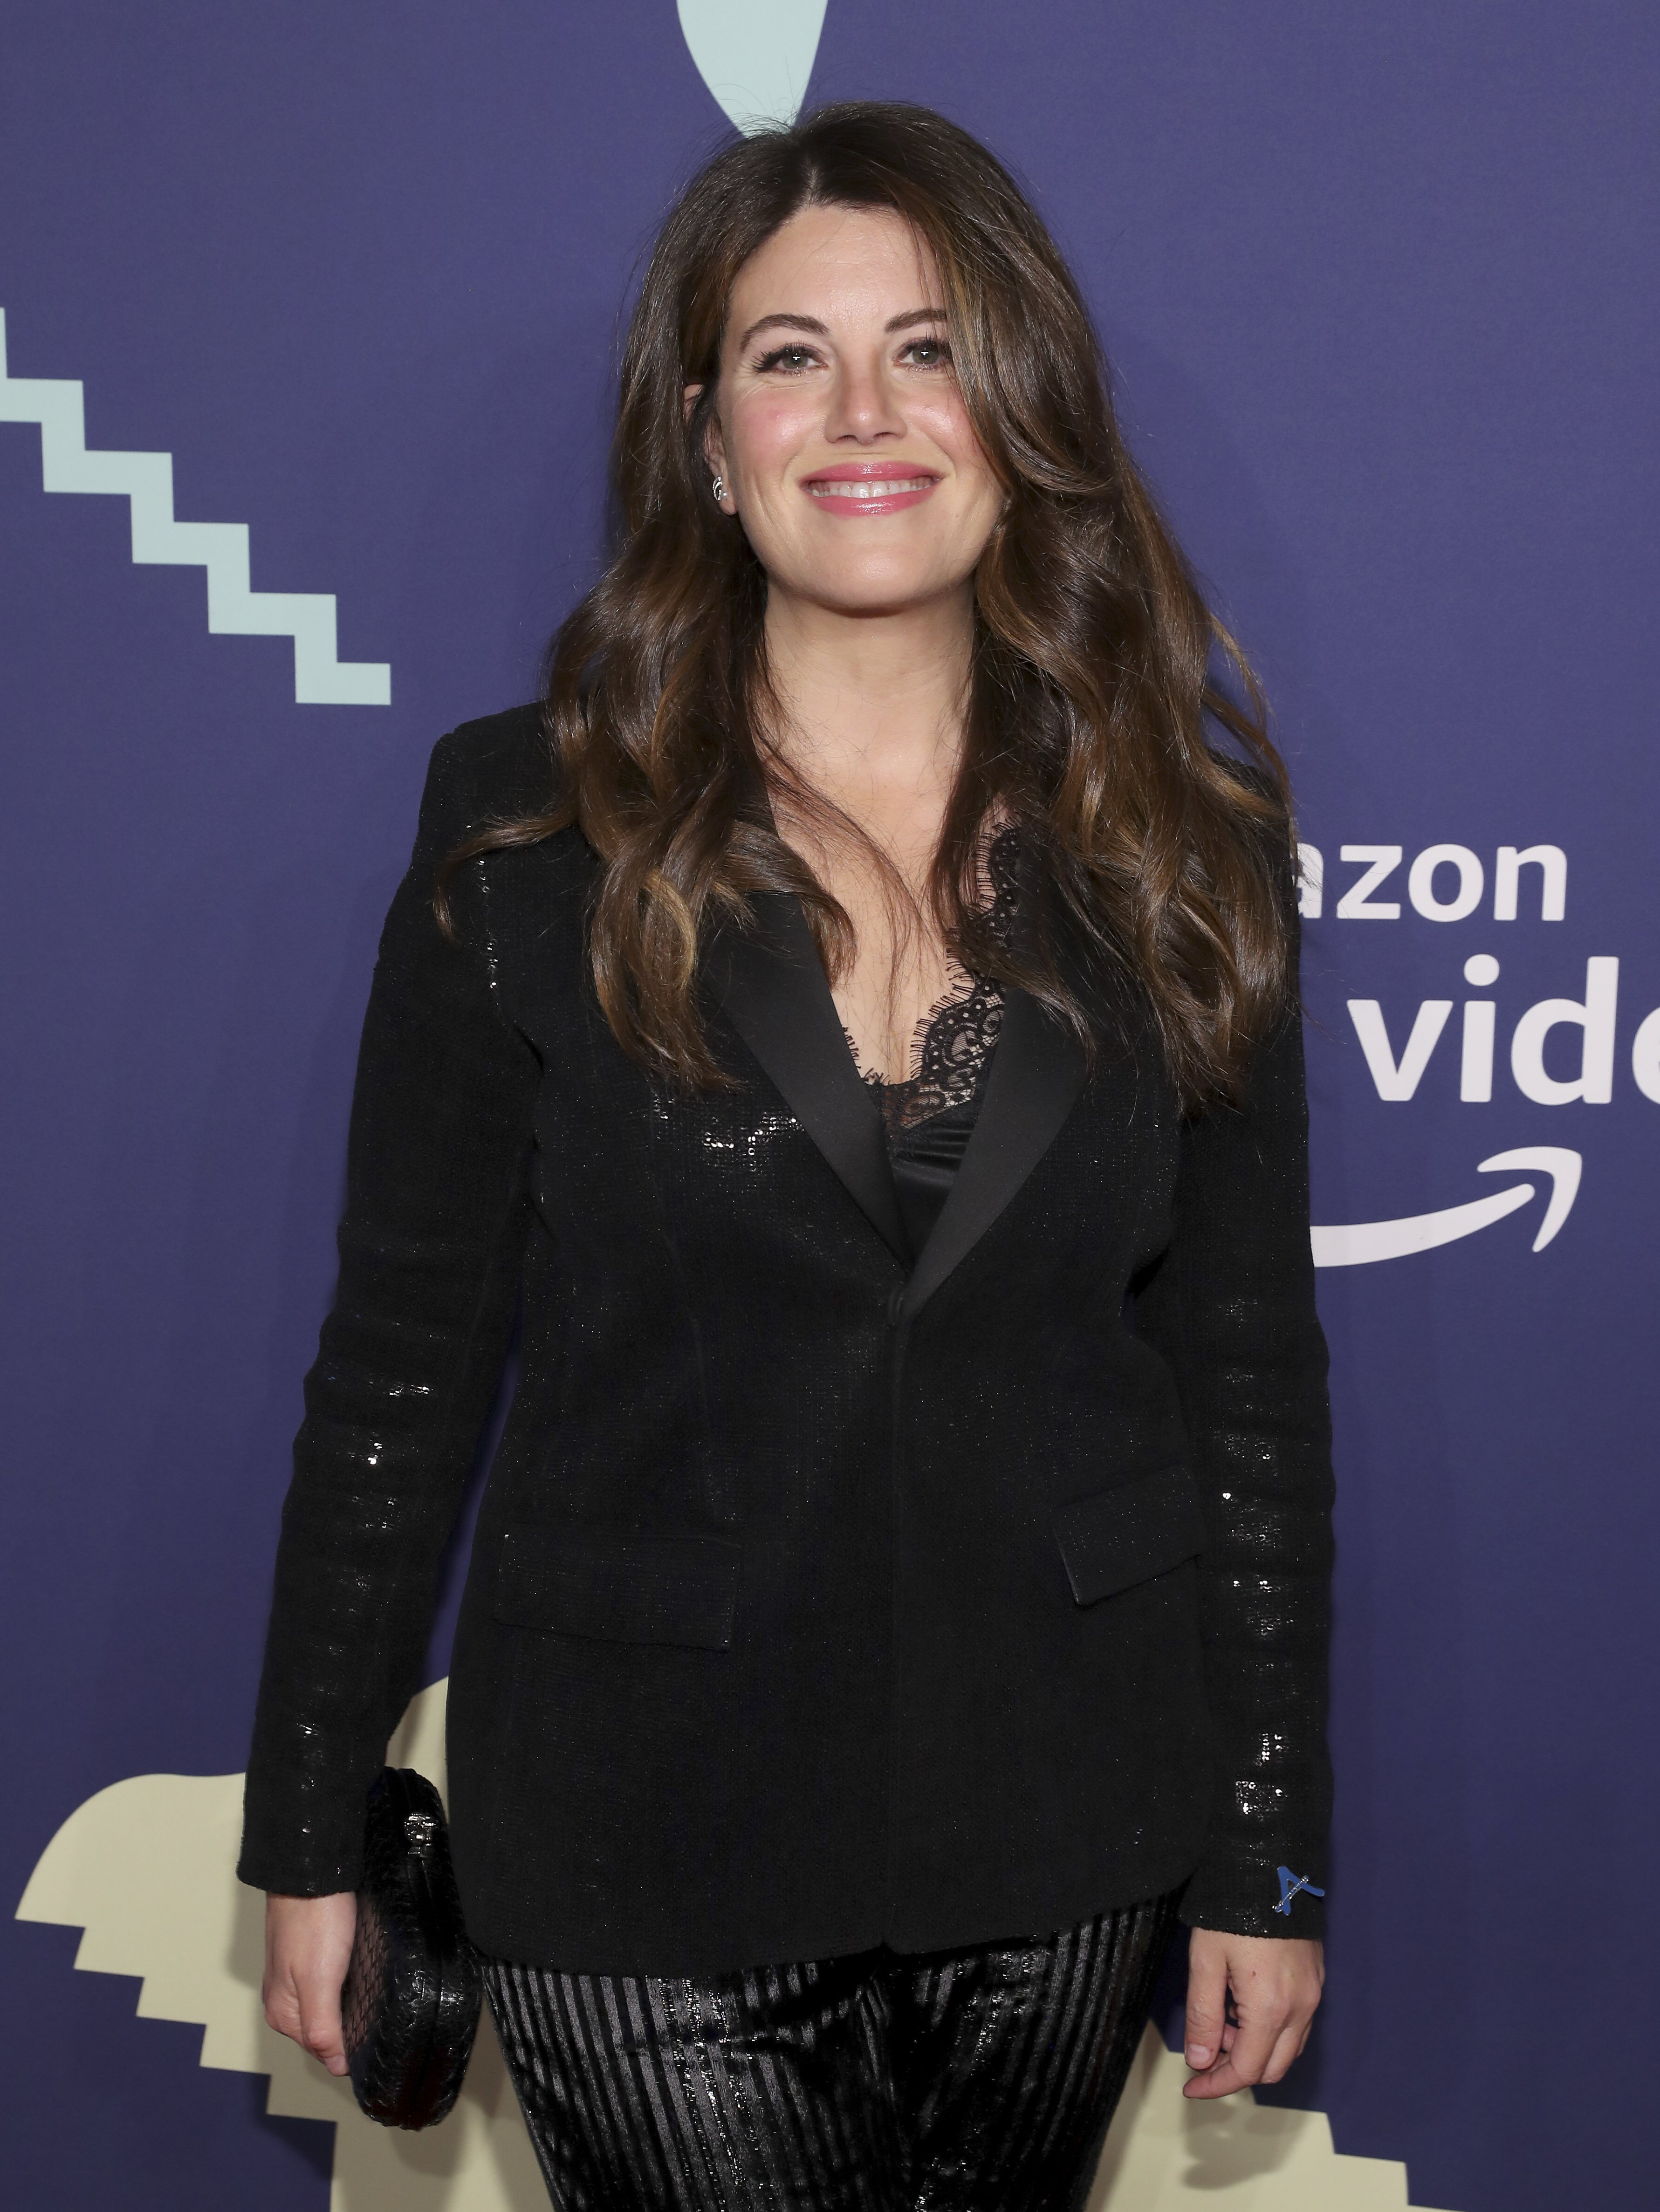 Monica Lewinsky at the 2019 Webby Awards at Cipriani Wall Street on May 13, 2019 in New York City | Photo: Getty Images